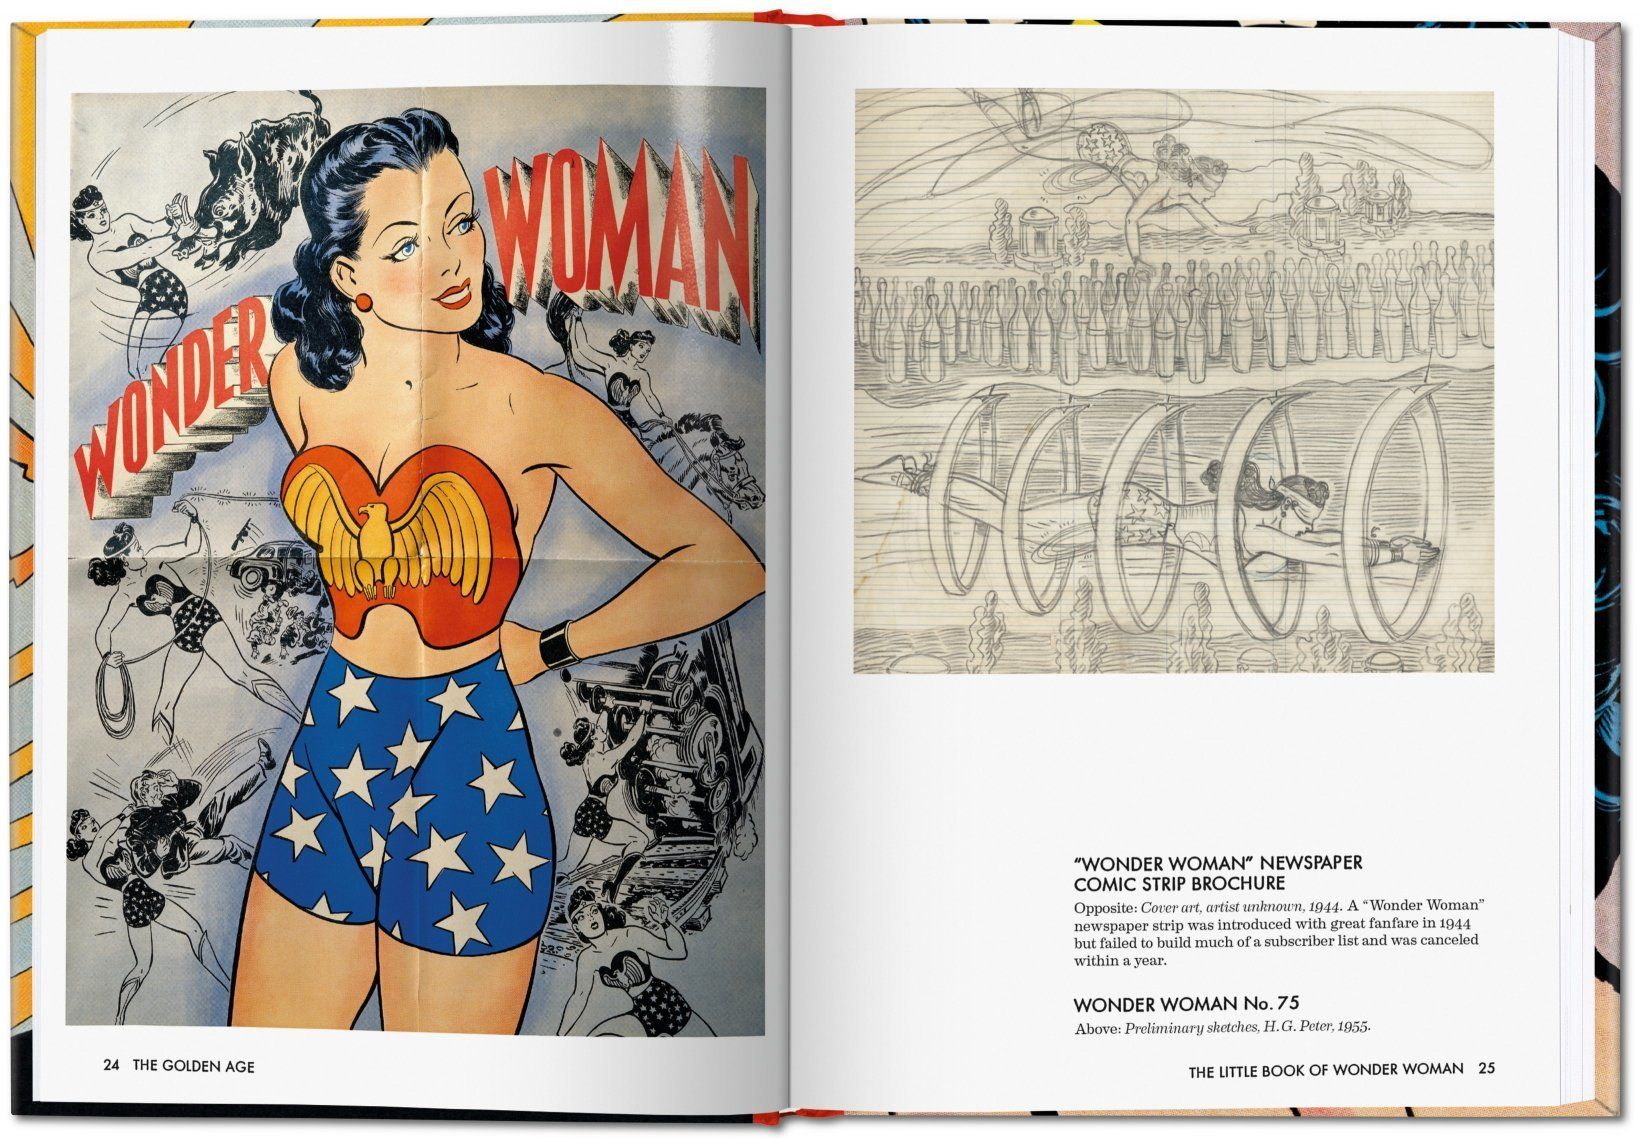 Levitz's Little Book of Wonder Woman, published by Taschen